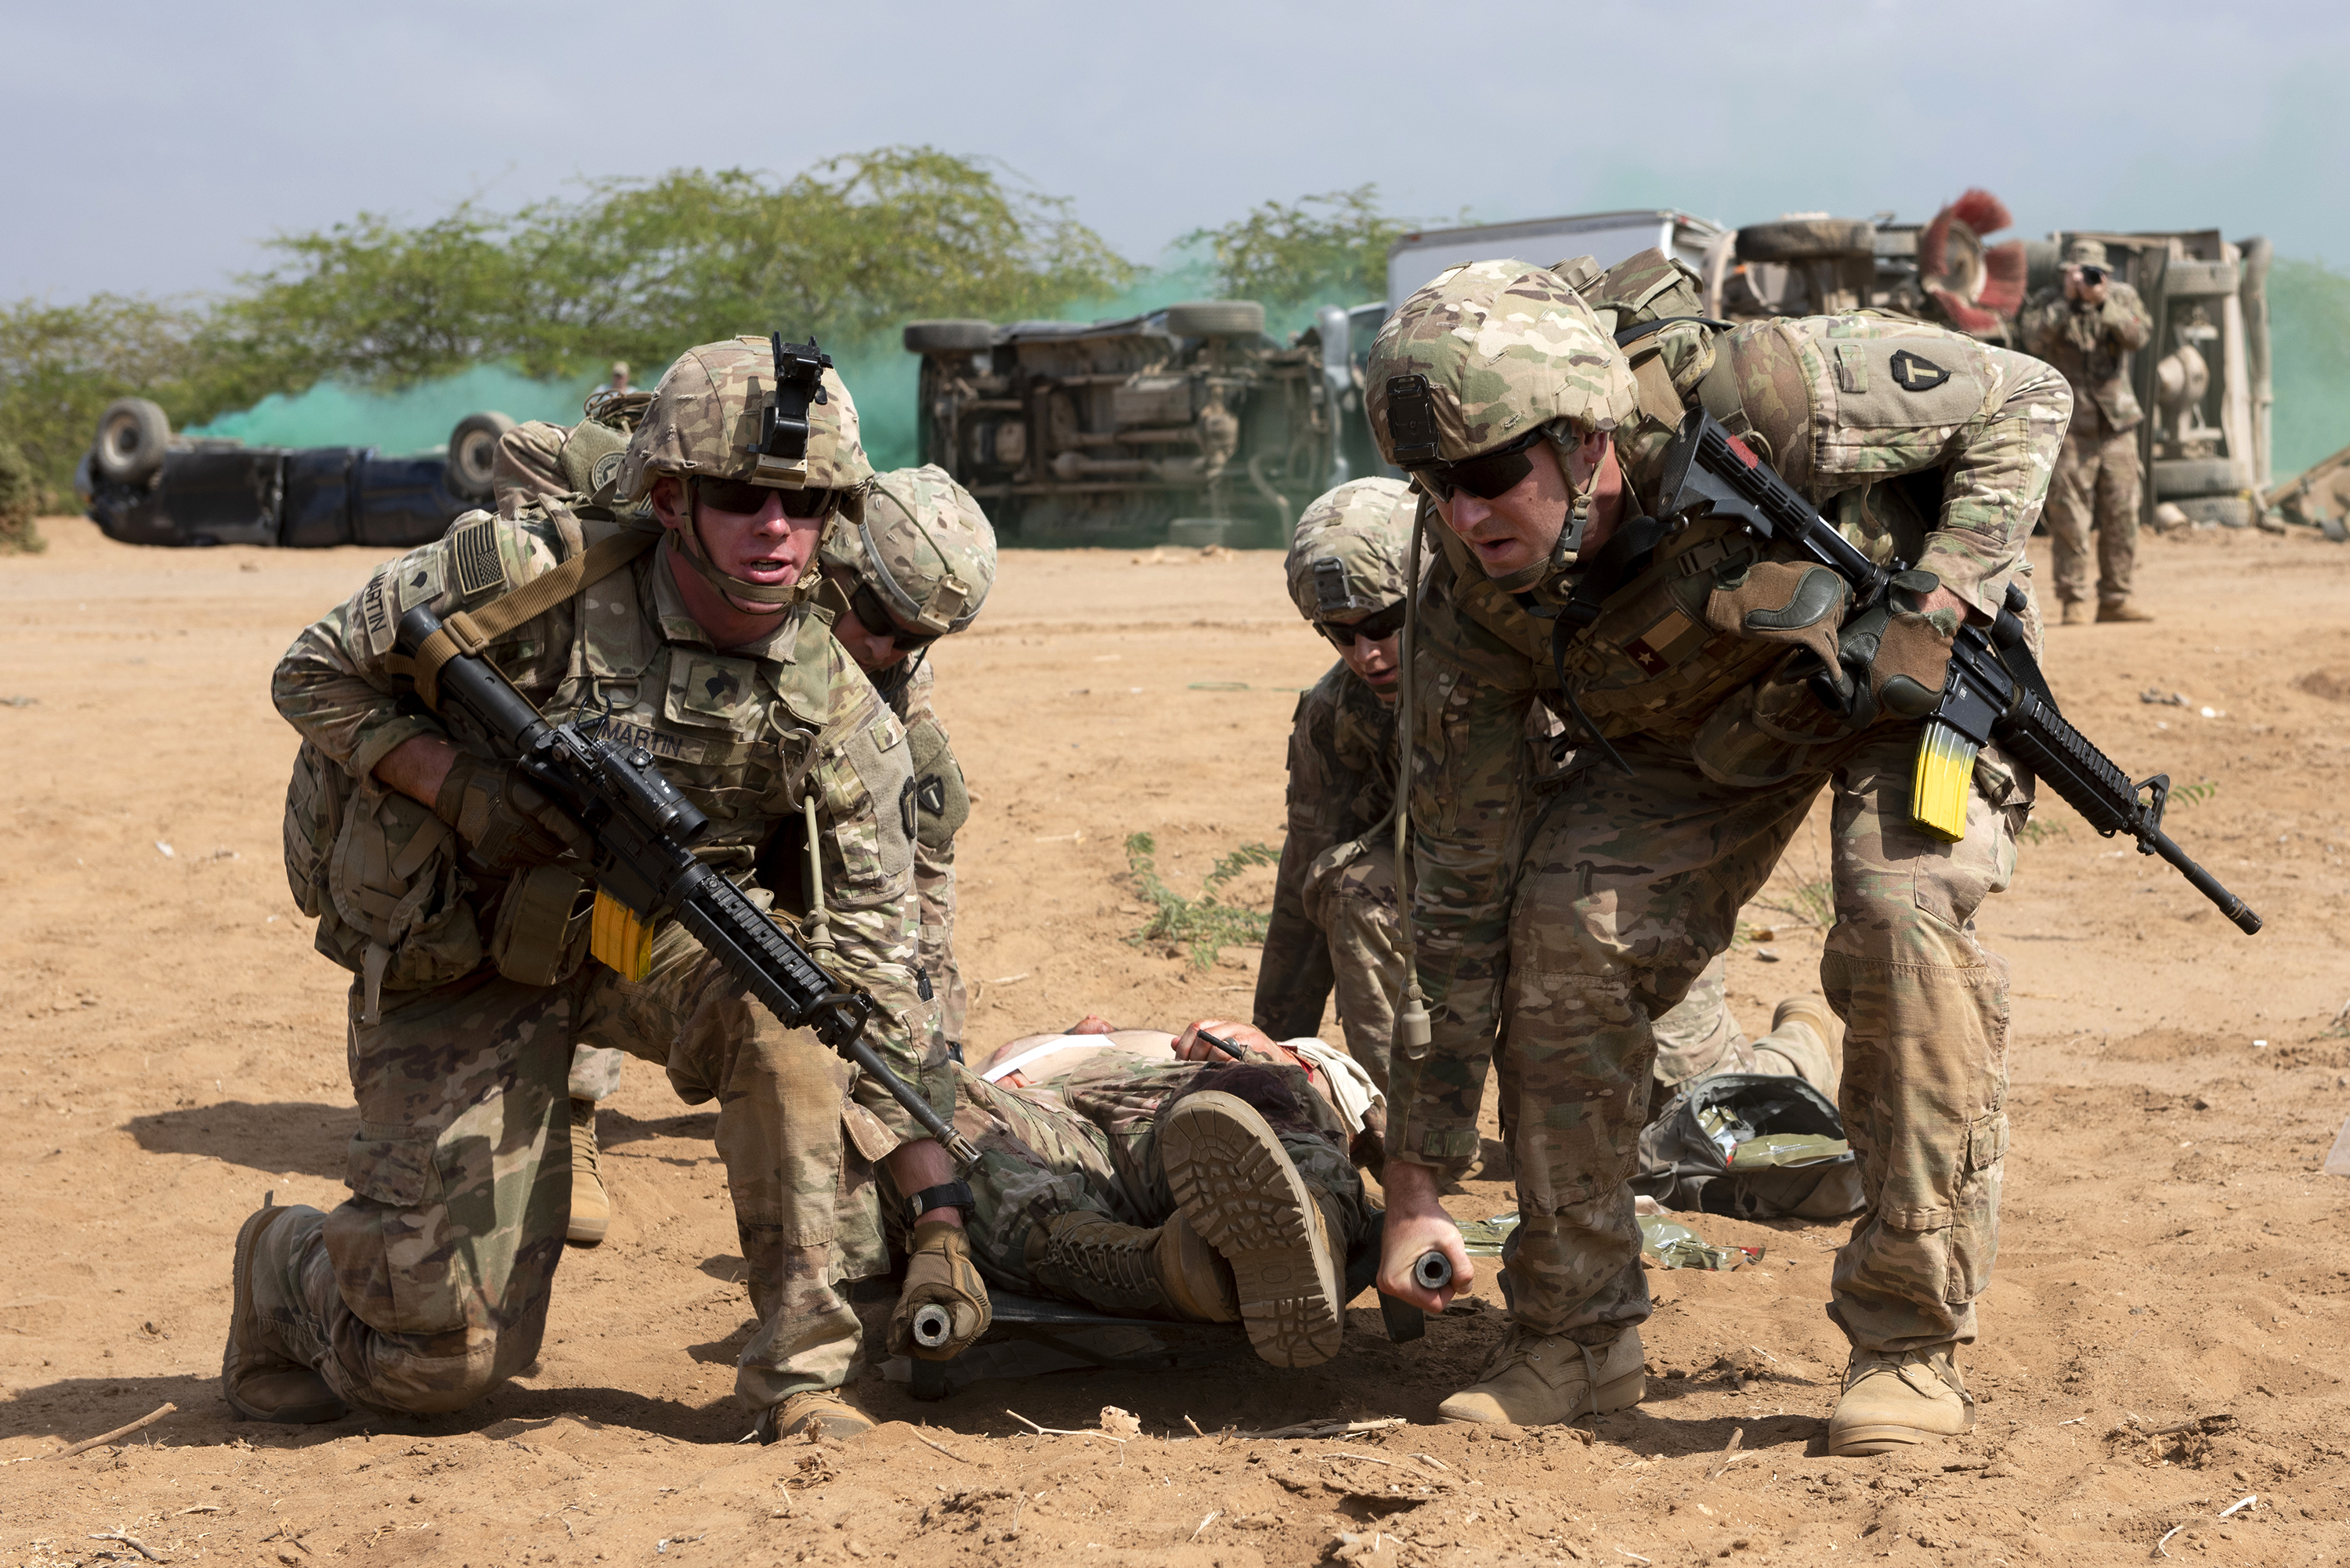 U.S. Soldiers assigned to 3rd Battalion, 144th Infantry Regiment, Texas Army National Guard, prepare to transport a simulated casualty on a litter in Djibouti City, Djibouti, April 24, 2018. As part of a joint mass casualty training exercise, service members performed various tasks in order to locate, secure and rescue simulated casualties. (U.S. Air National Guard photo by Master Sgt. Sarah Mattison)